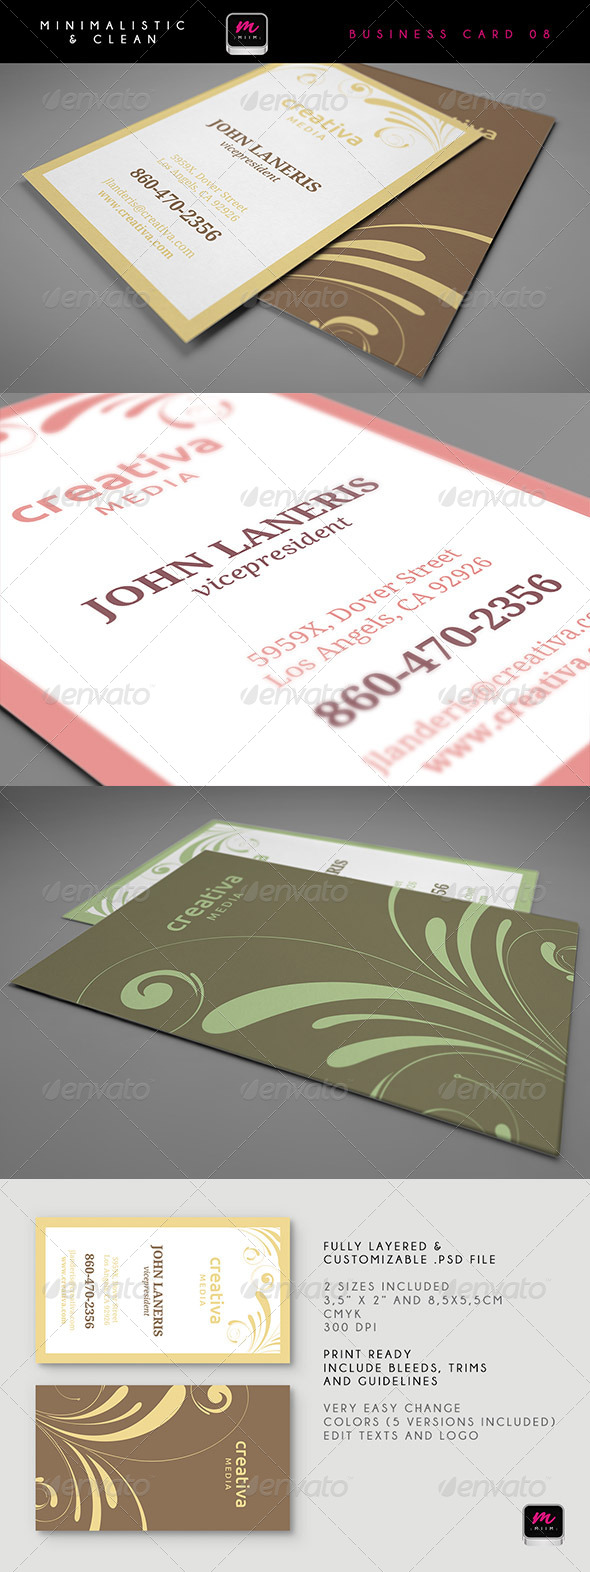 GraphicRiver Clean Business Card Template 08 5913428